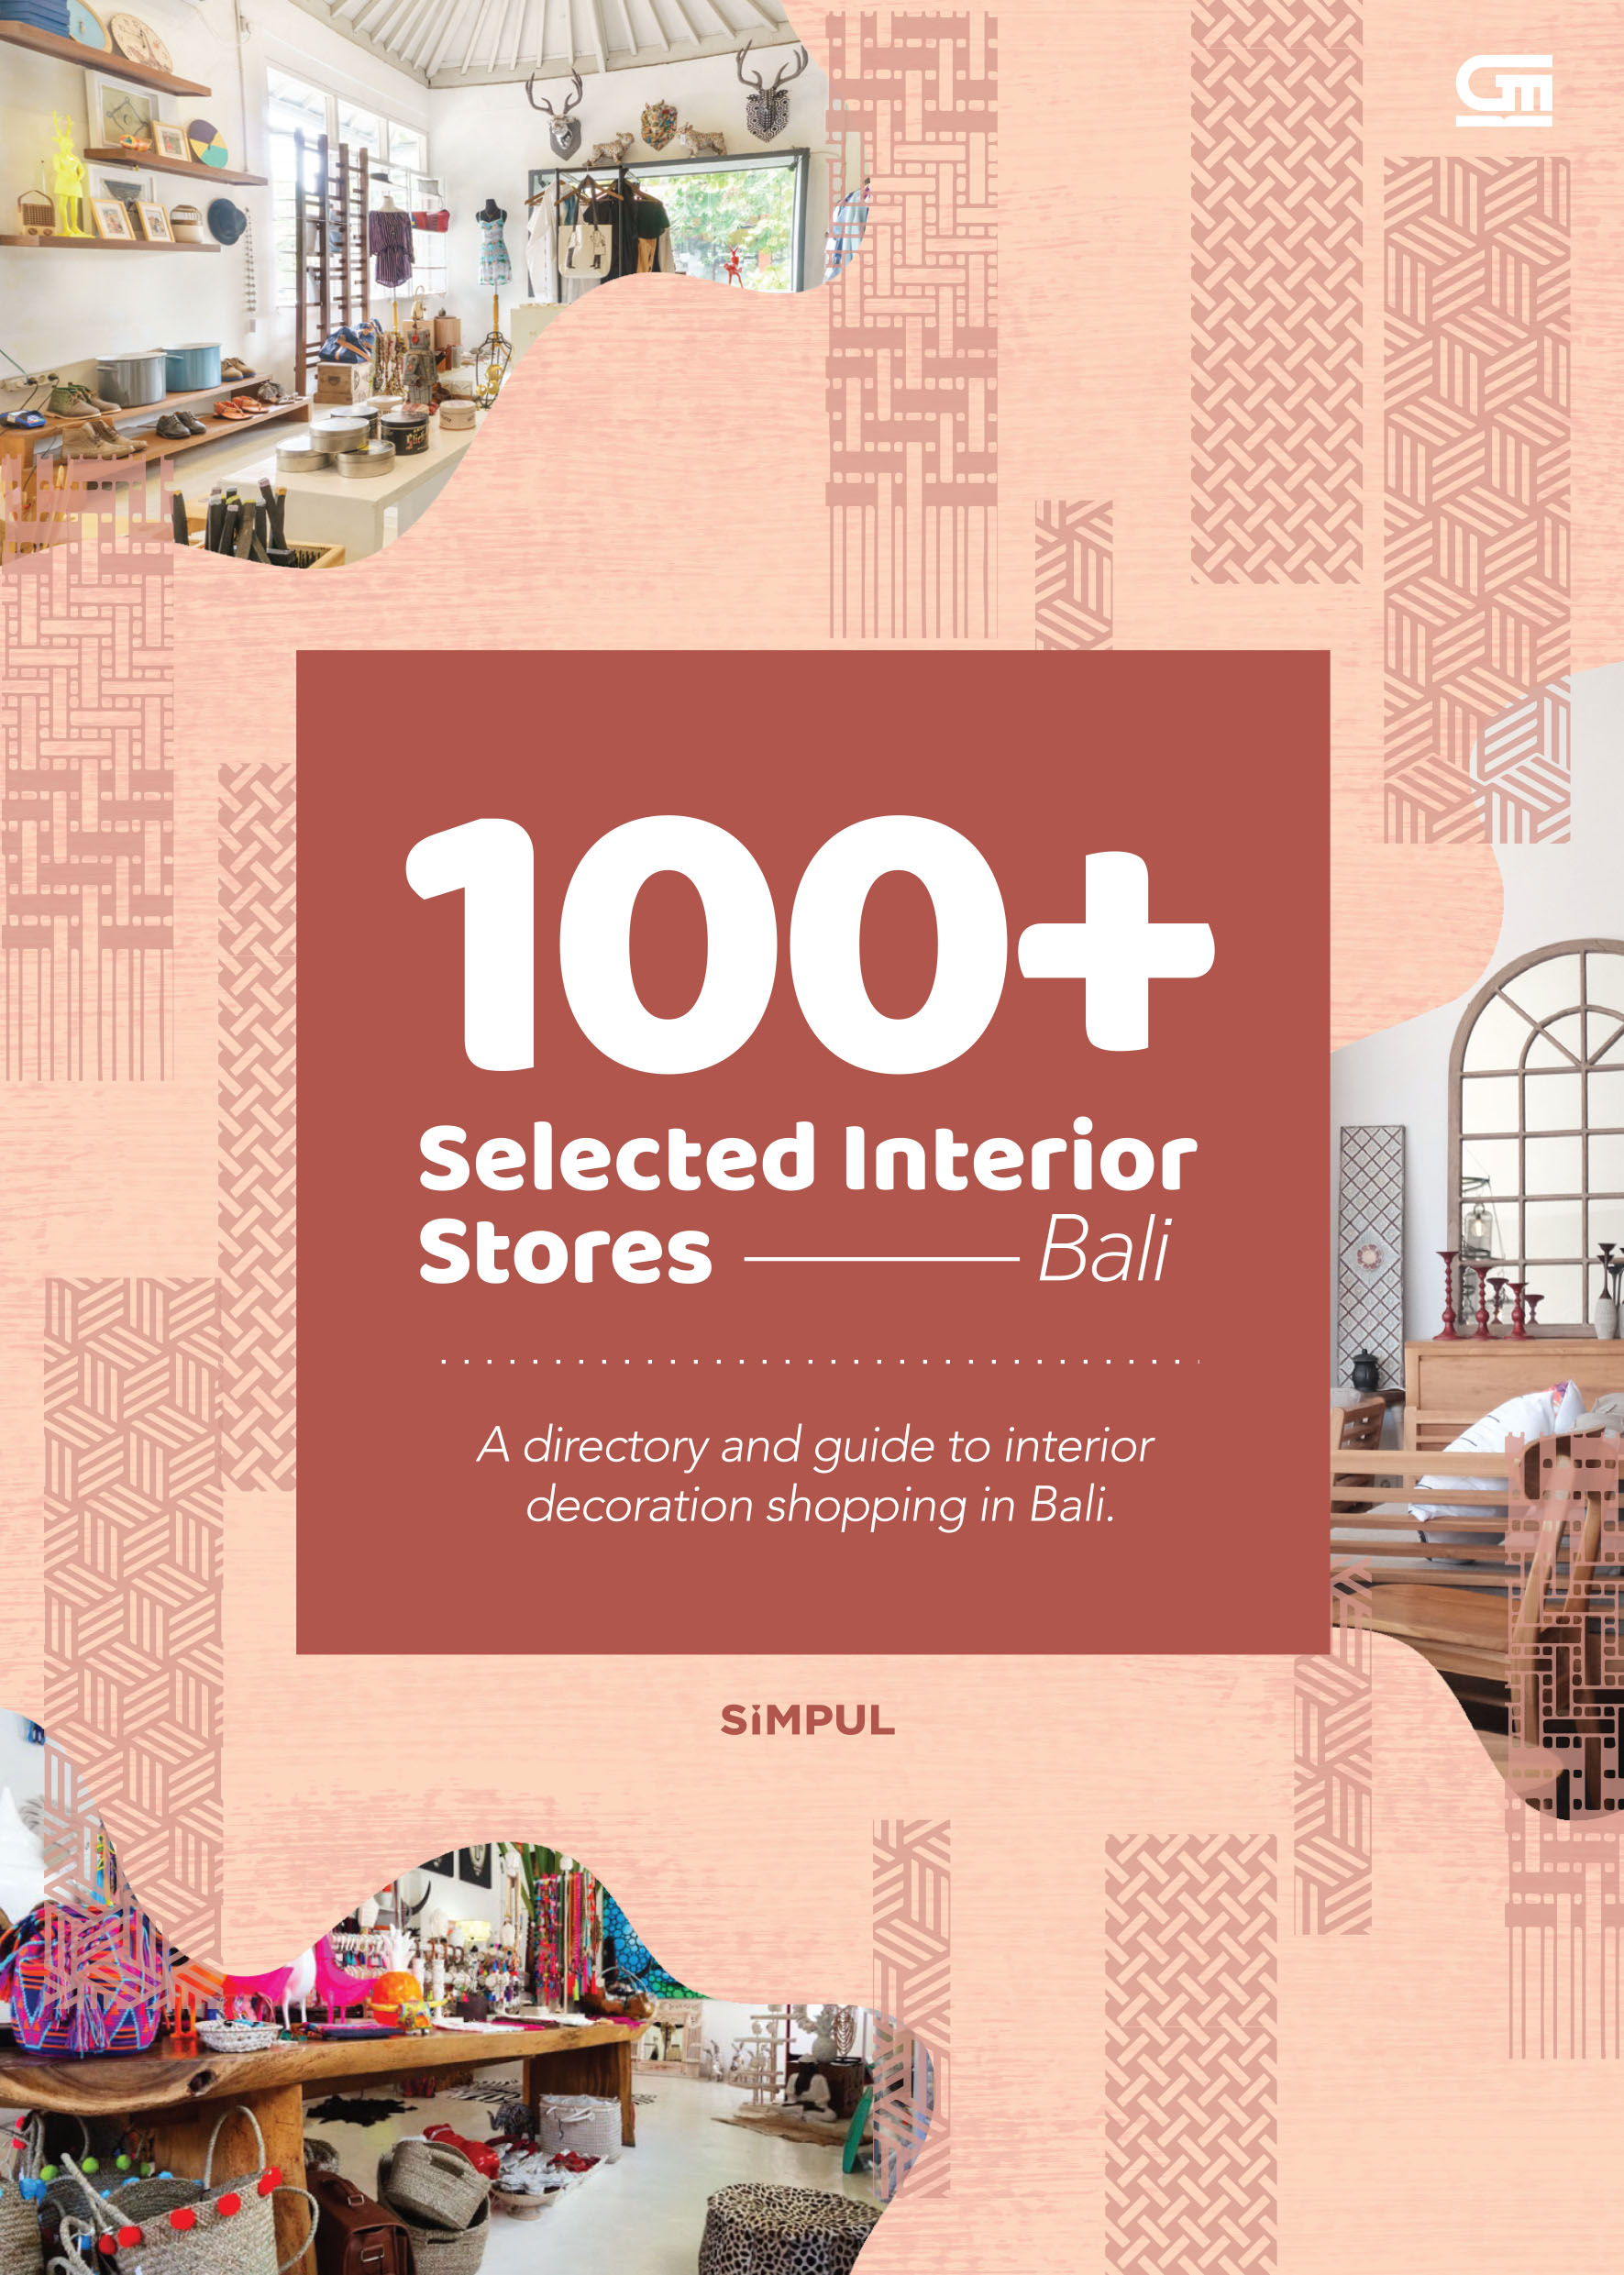 100+ Selected Interior Stories: Bali